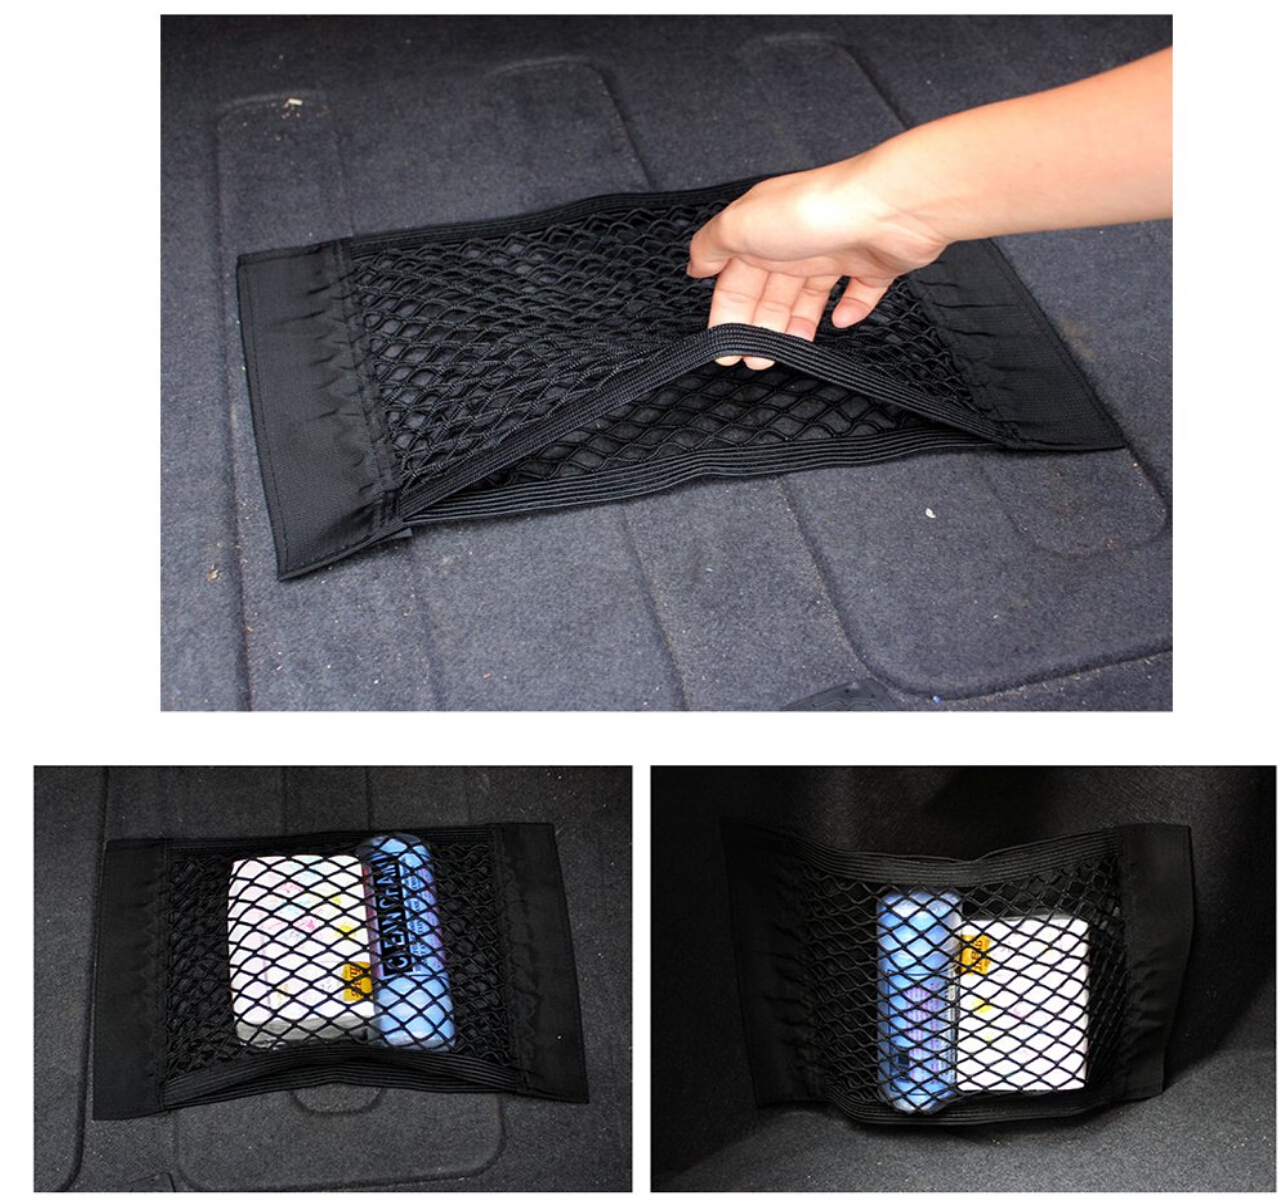 Image 2 - Car Trunk luggage Net For Mercedes Benz W203 W210 W211 AMG W204 W220 W205 B C E GLK ML GL Class A260 E300 C200 Car Accessories-in Car Stickers from Automobiles & Motorcycles